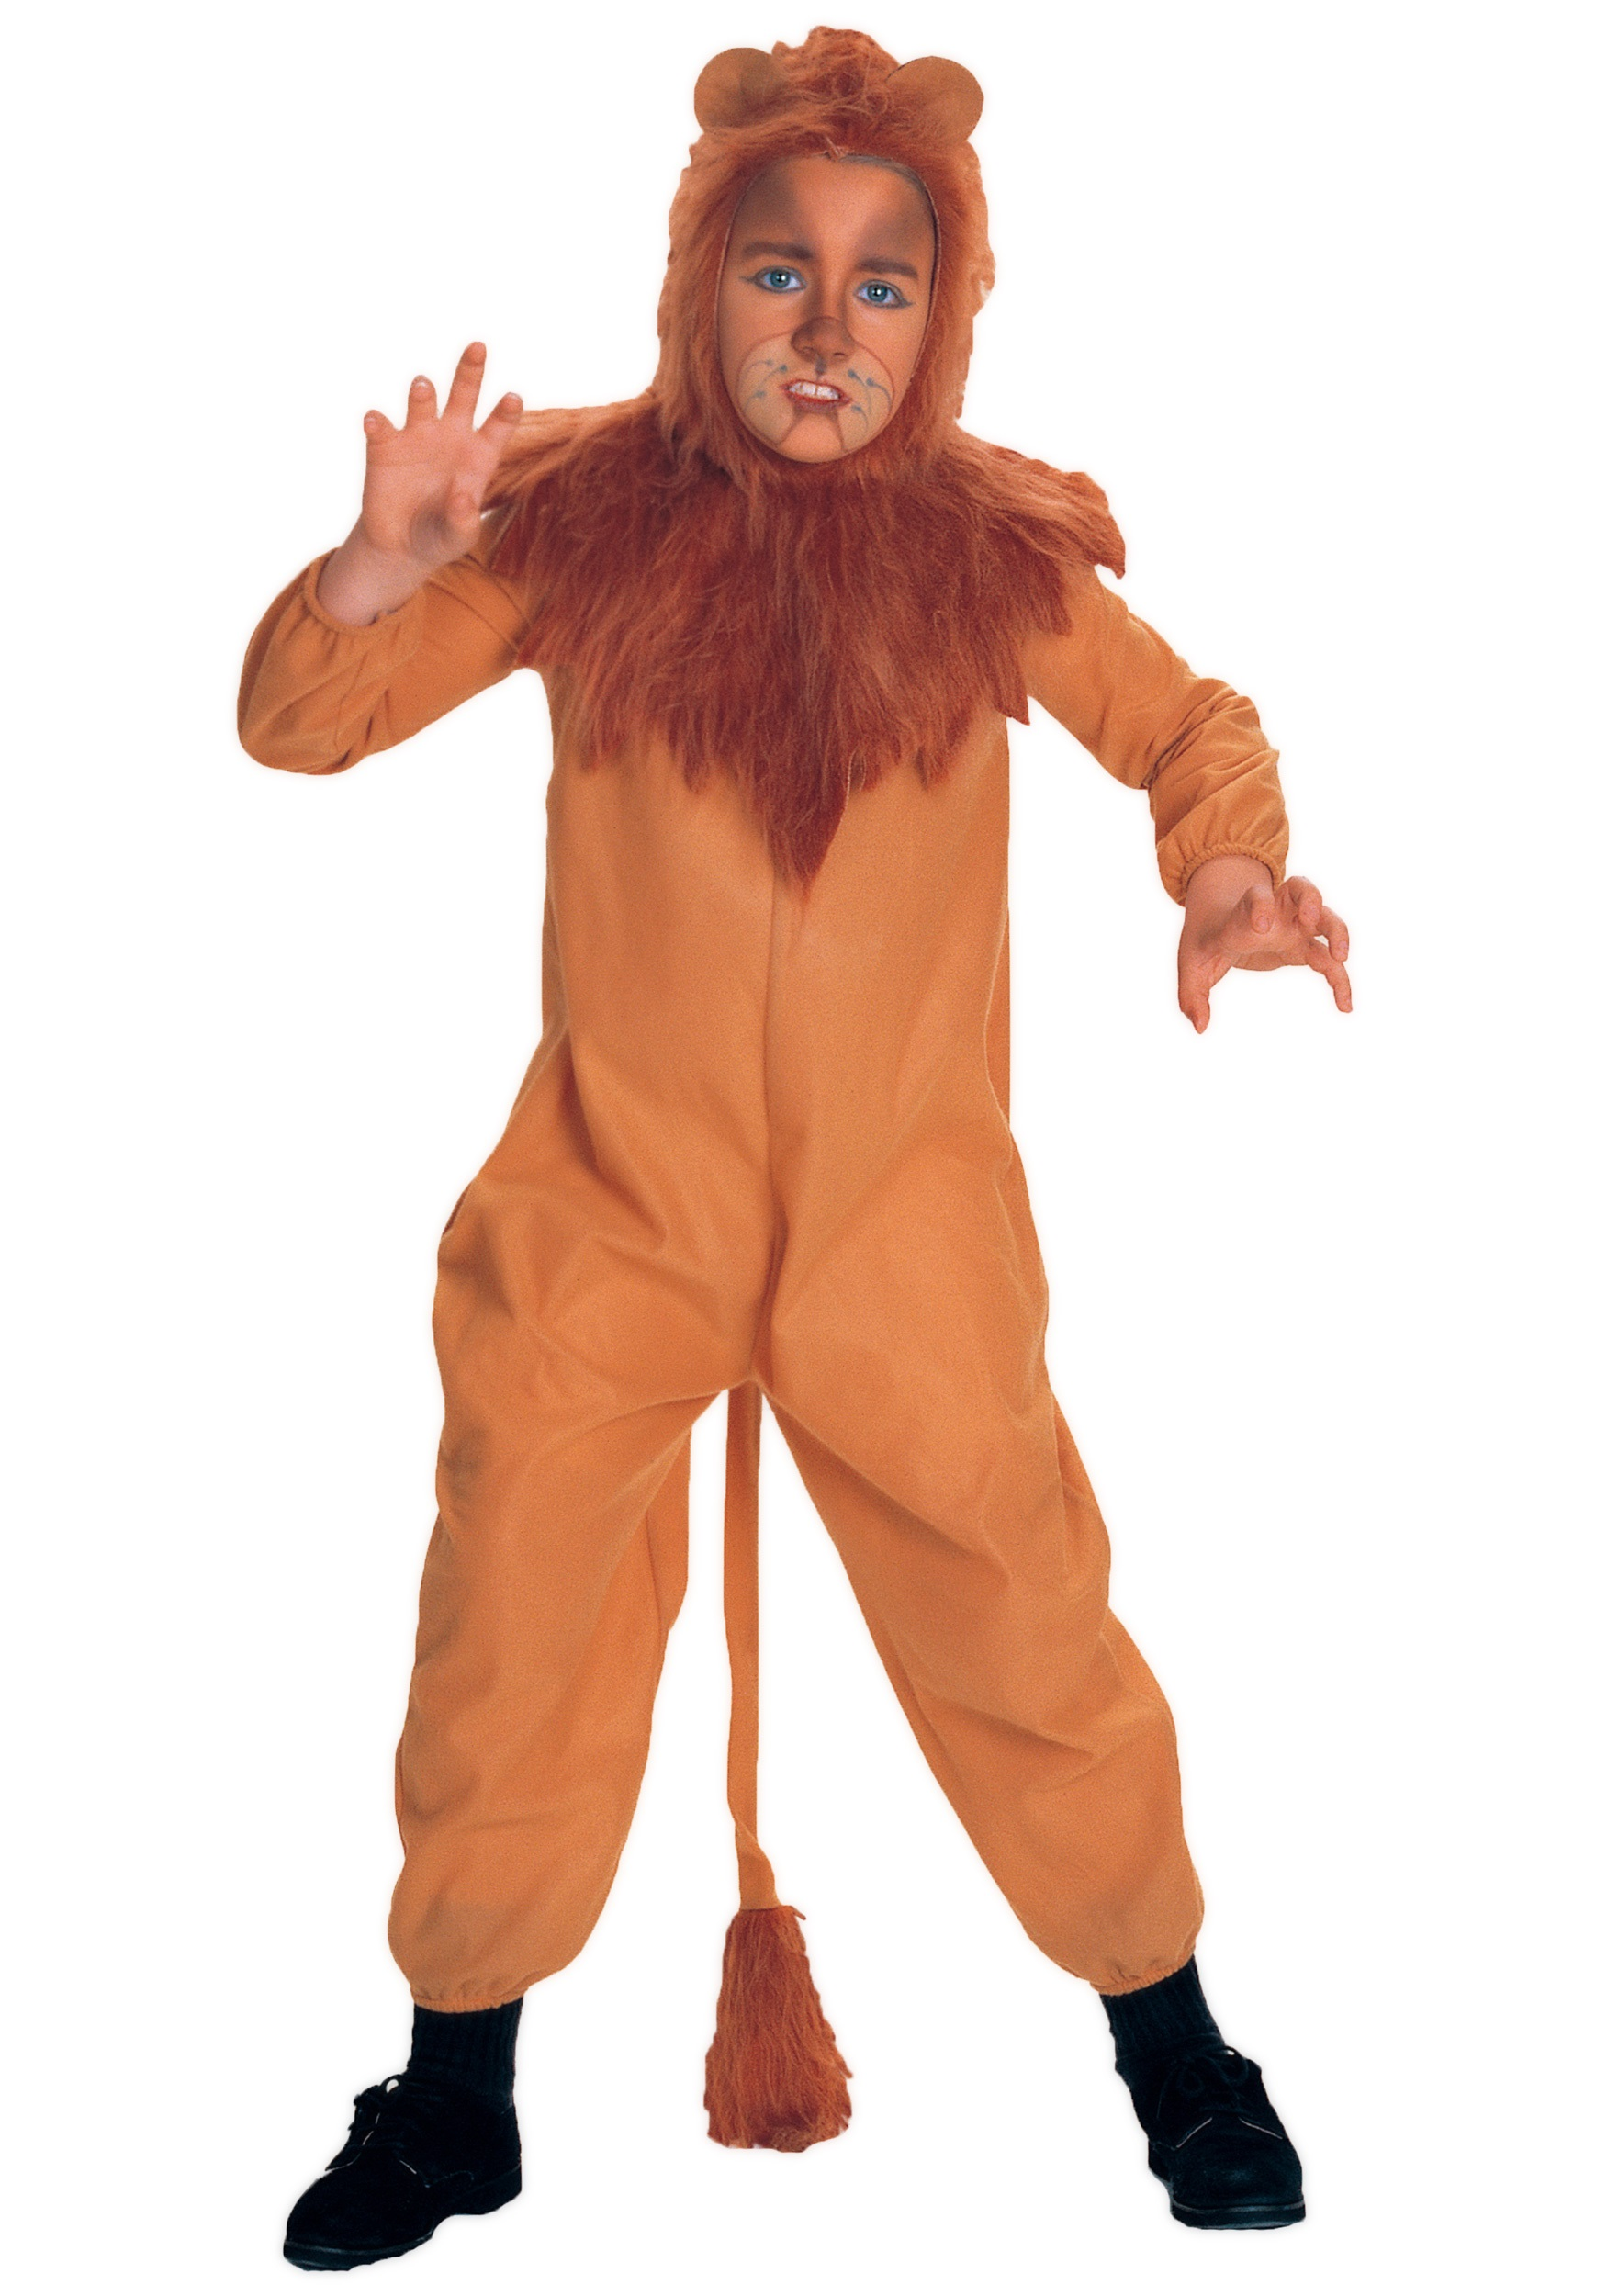 Real cowardly lion costume - photo#10